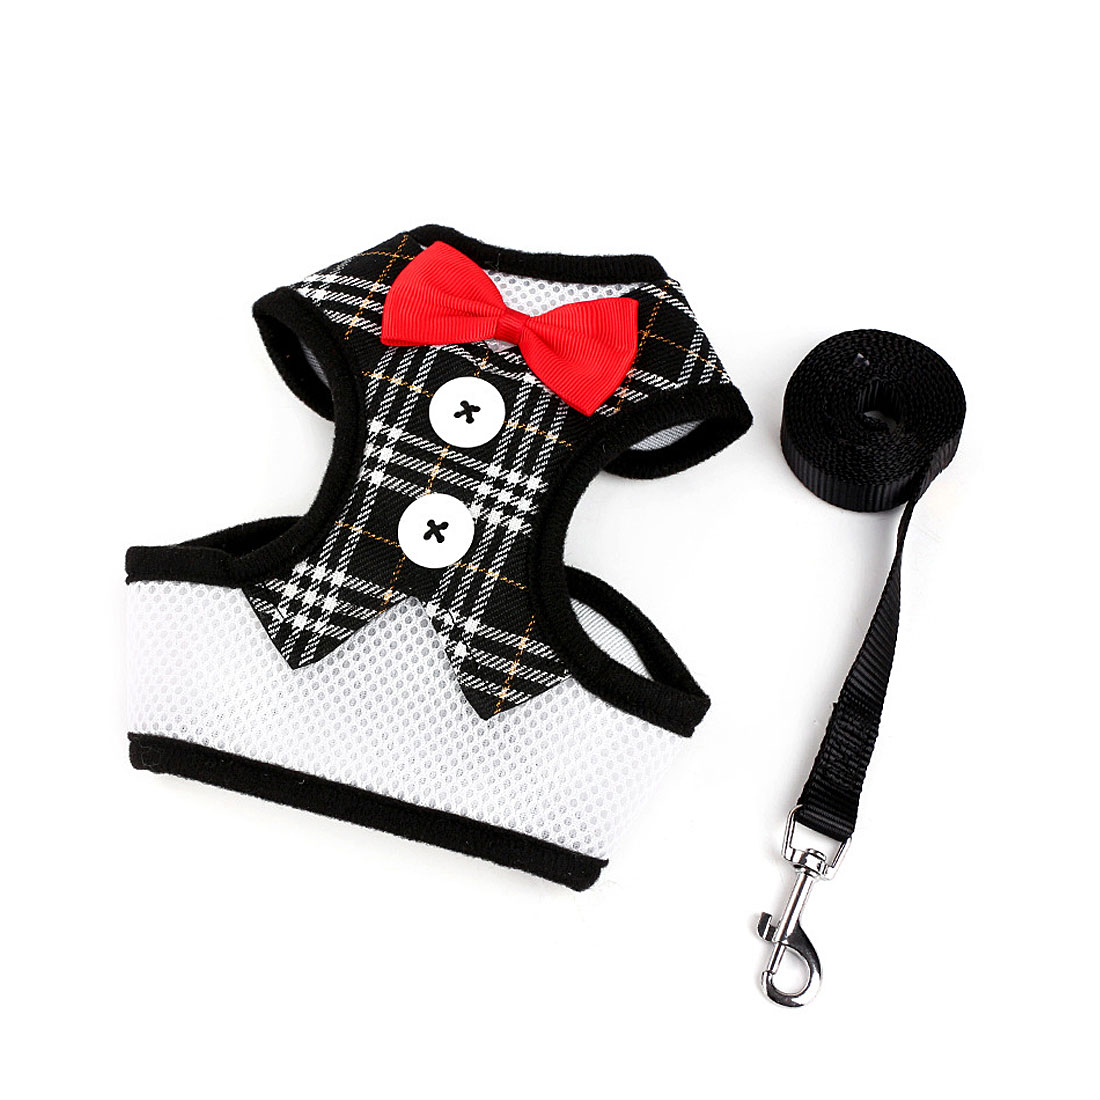 Adjustable Padded Small Dog Harness Breathable Dog Vest Bowtie Gentleman Suit Black Grid L